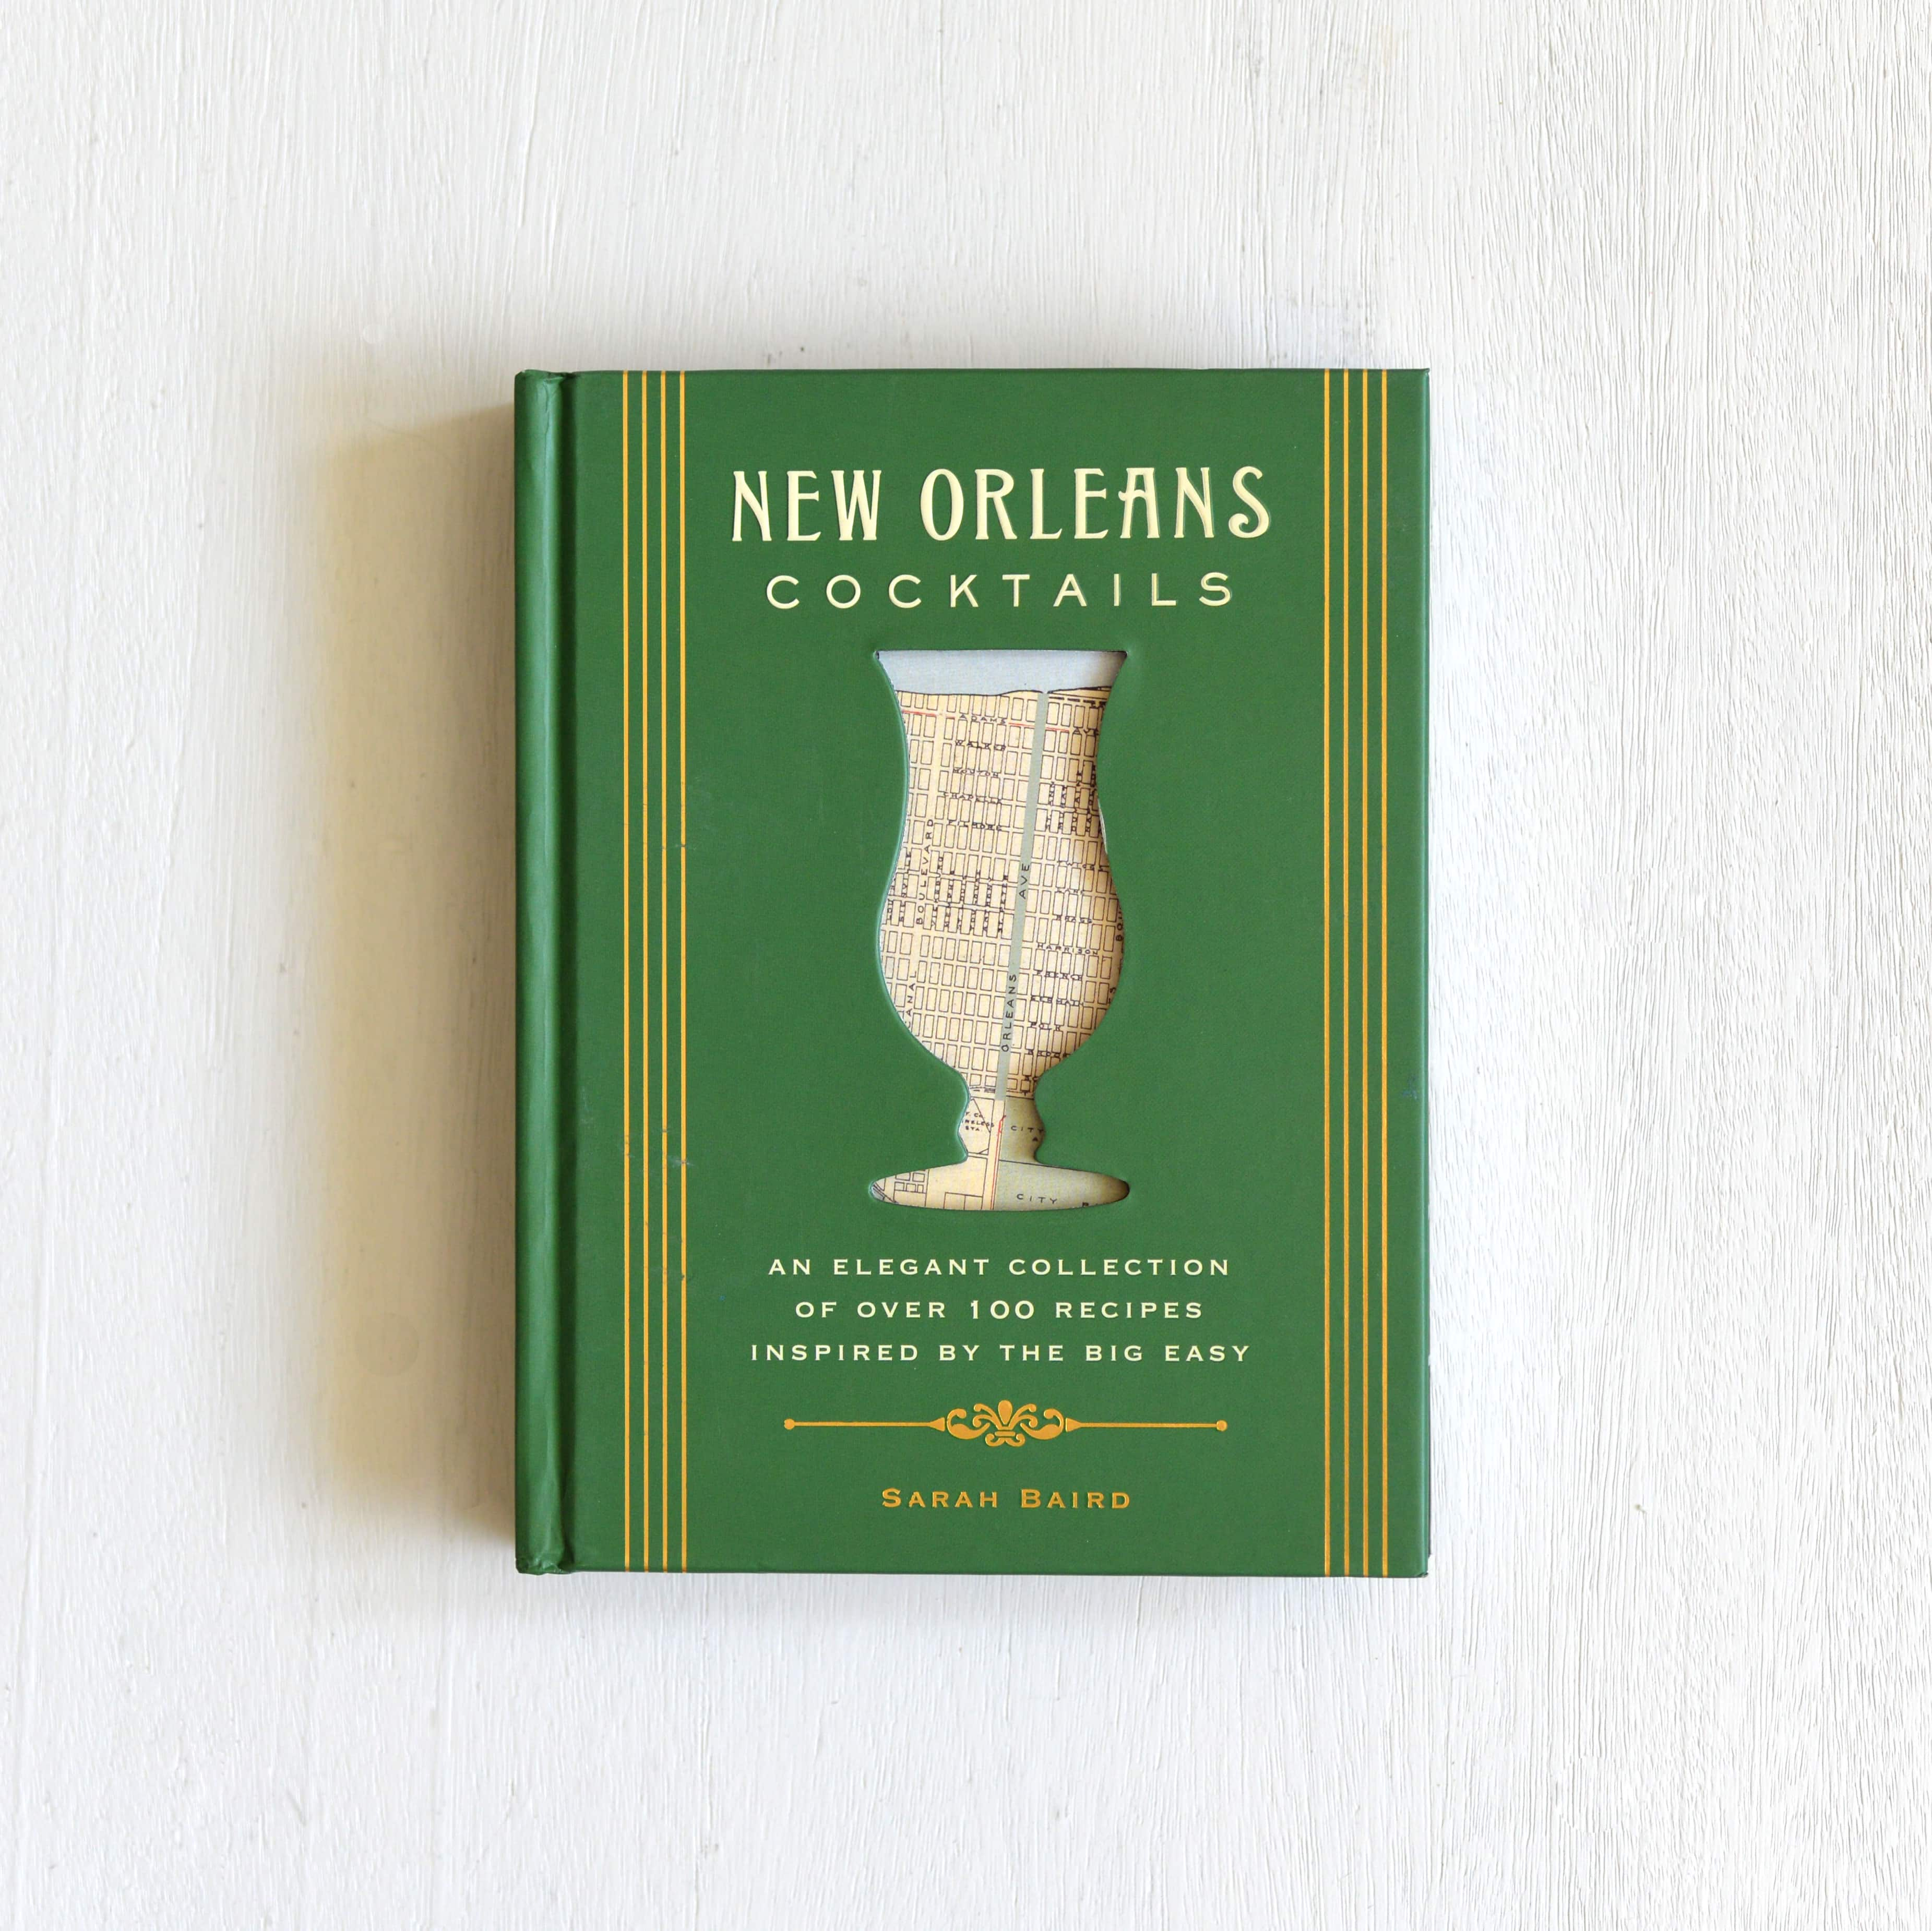 New Orleans Cocktails